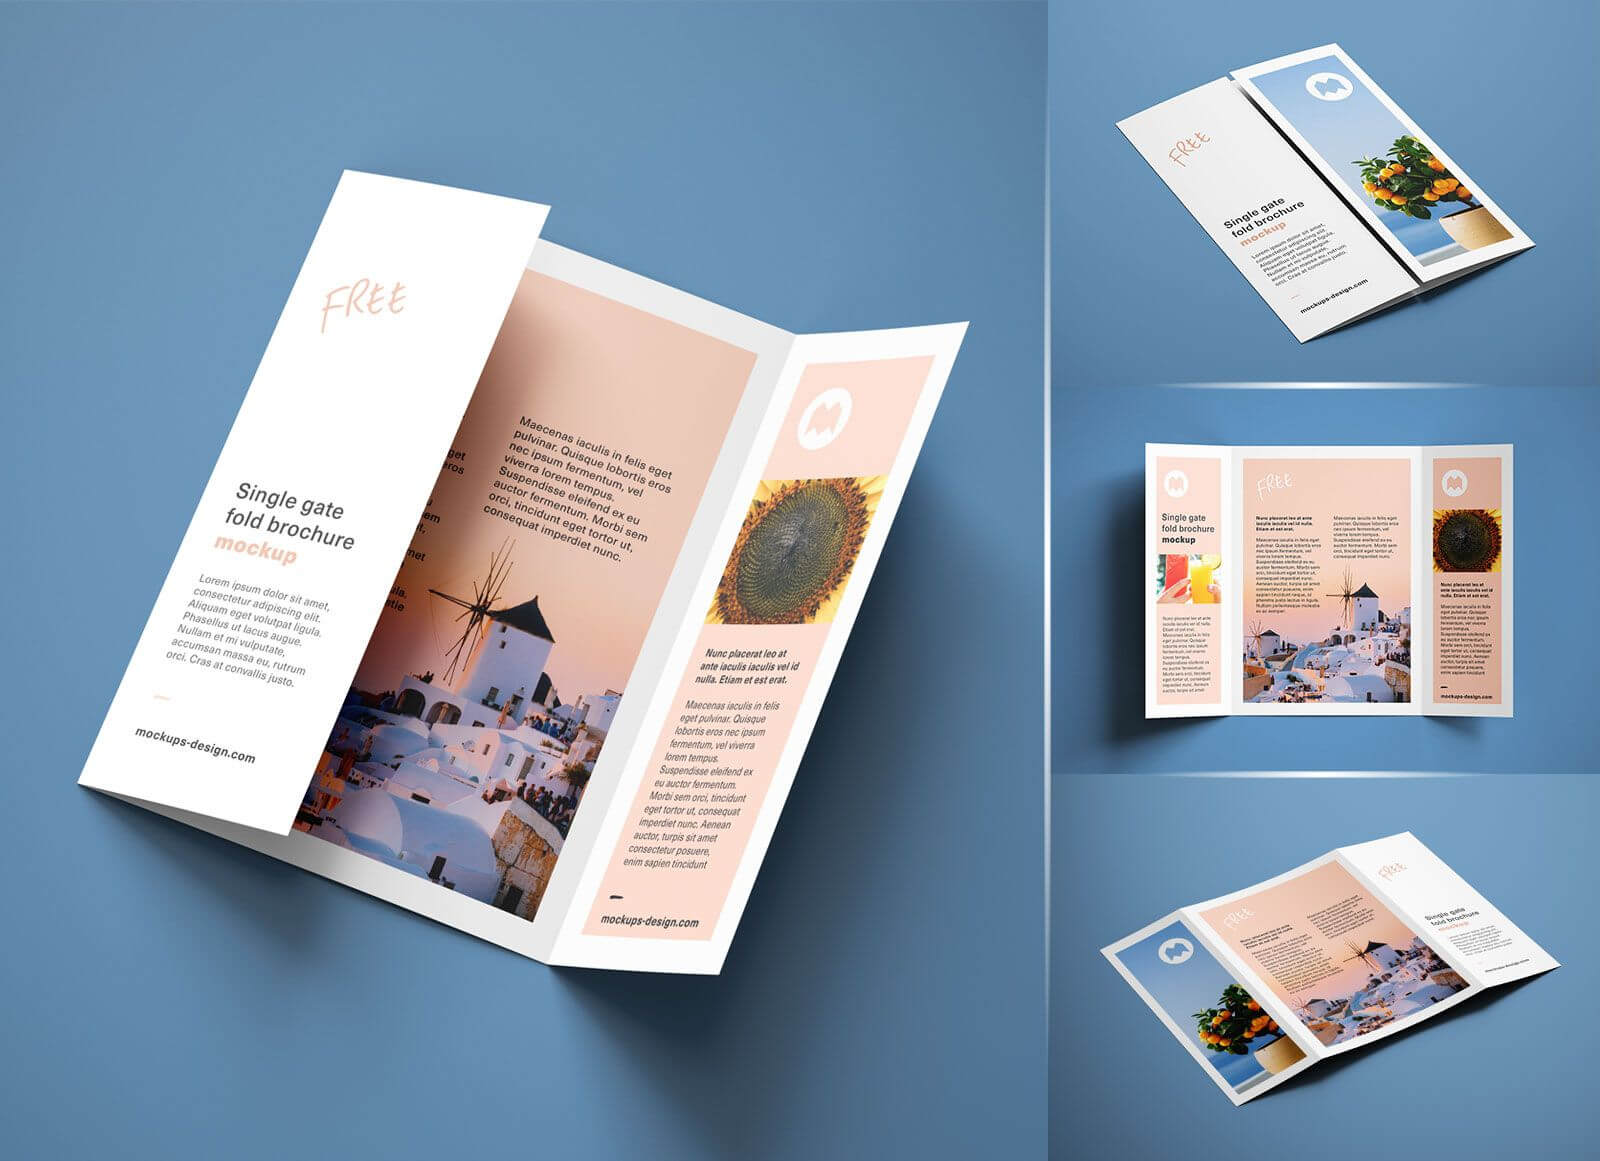 Free A4 Single-Gate Fold Brochure Mockup Psd Set   Graphic within Gate Fold Brochure Template Indesign